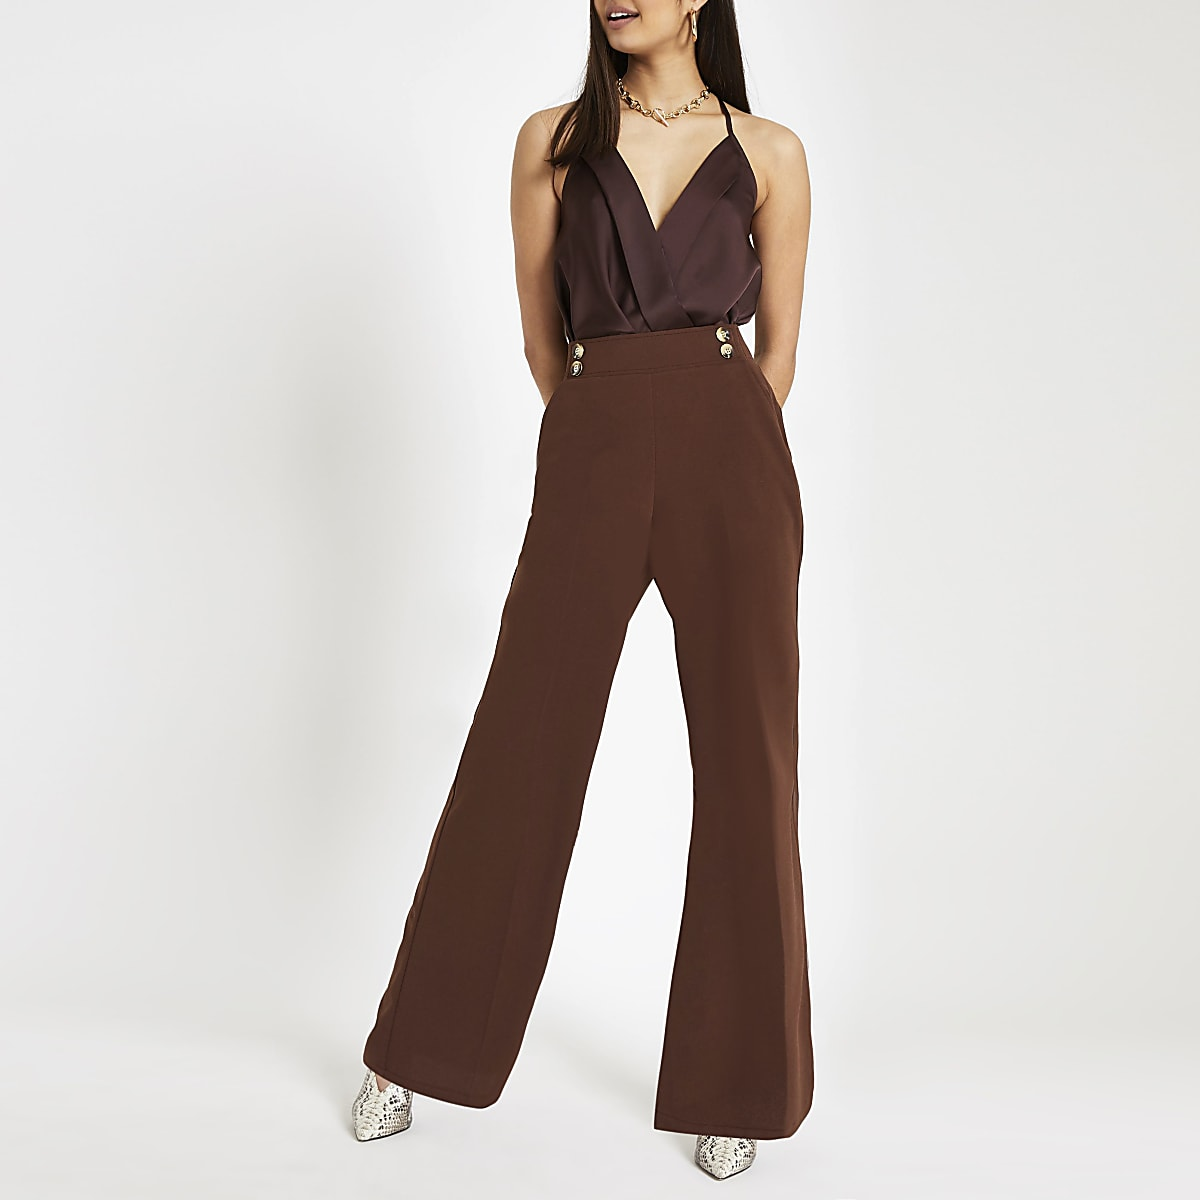 Brown satin wrap bodysuit